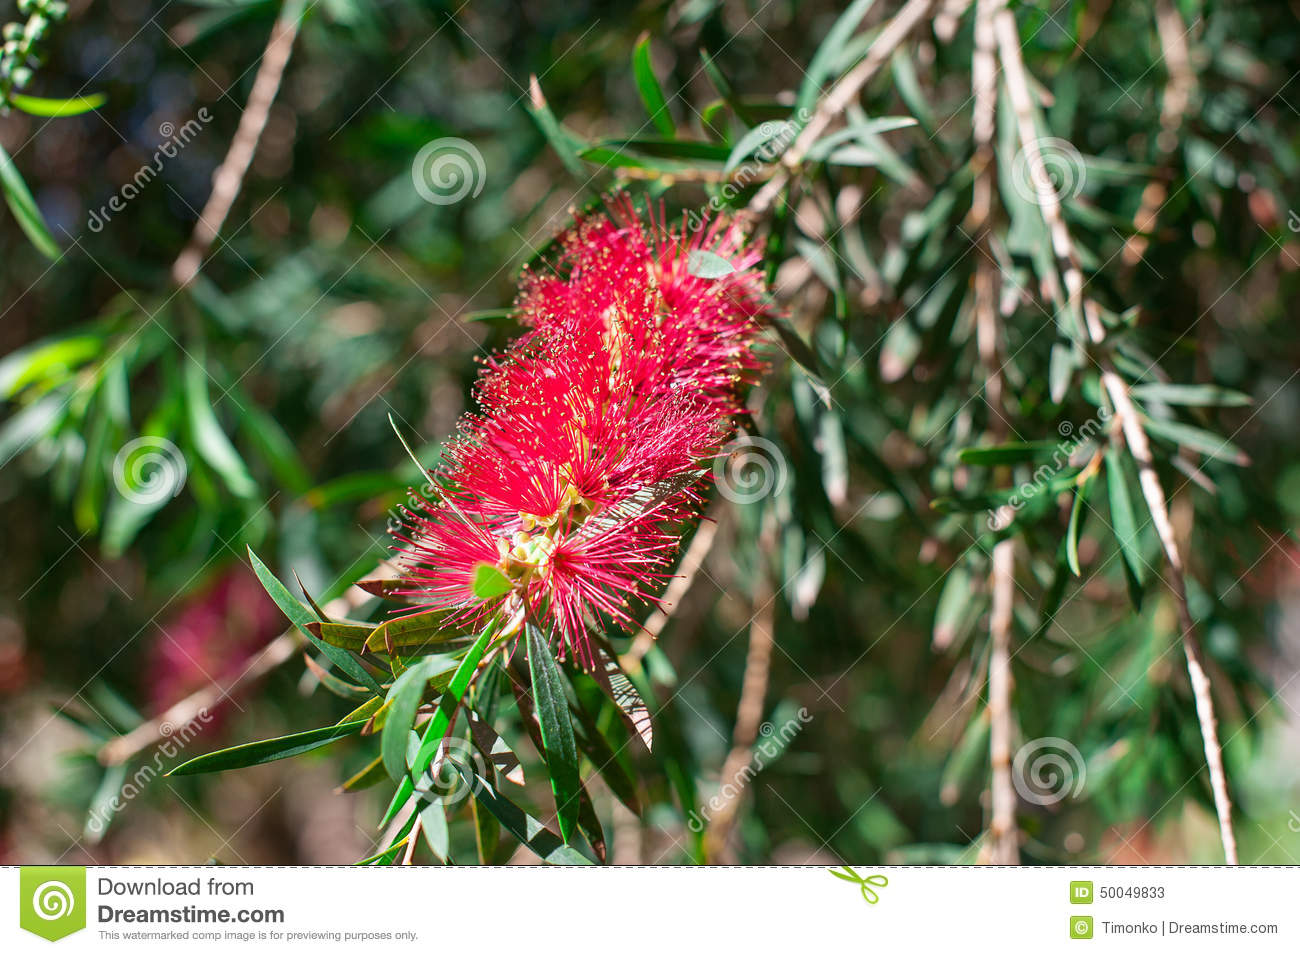 fleurs rouges exotiques de l 39 arbre de brosse de bouteille callistemon photo stock image. Black Bedroom Furniture Sets. Home Design Ideas